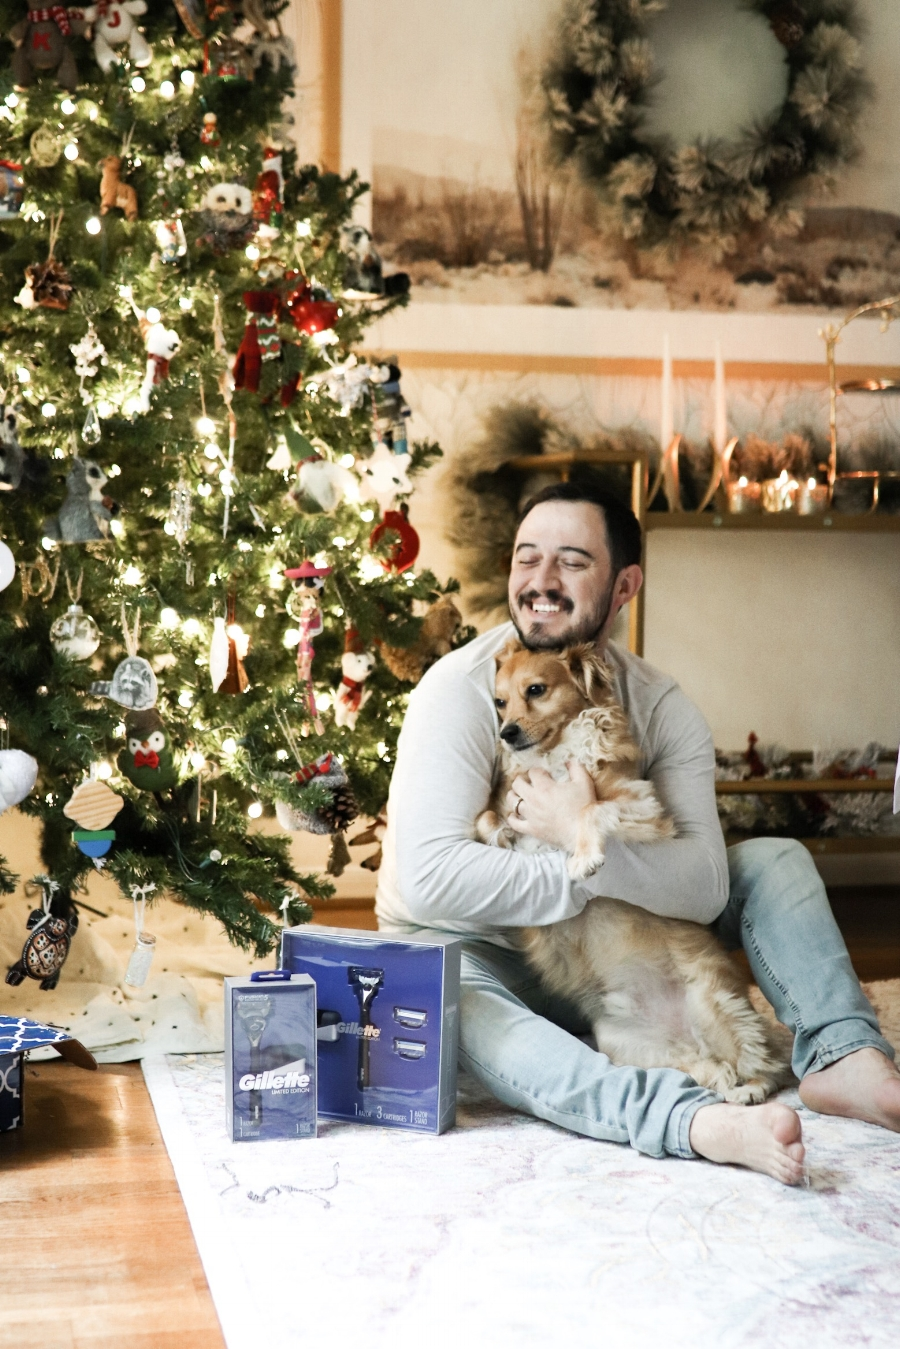 5 under $20 Holiday Gift Guide for Him, Hand Picked by a Man